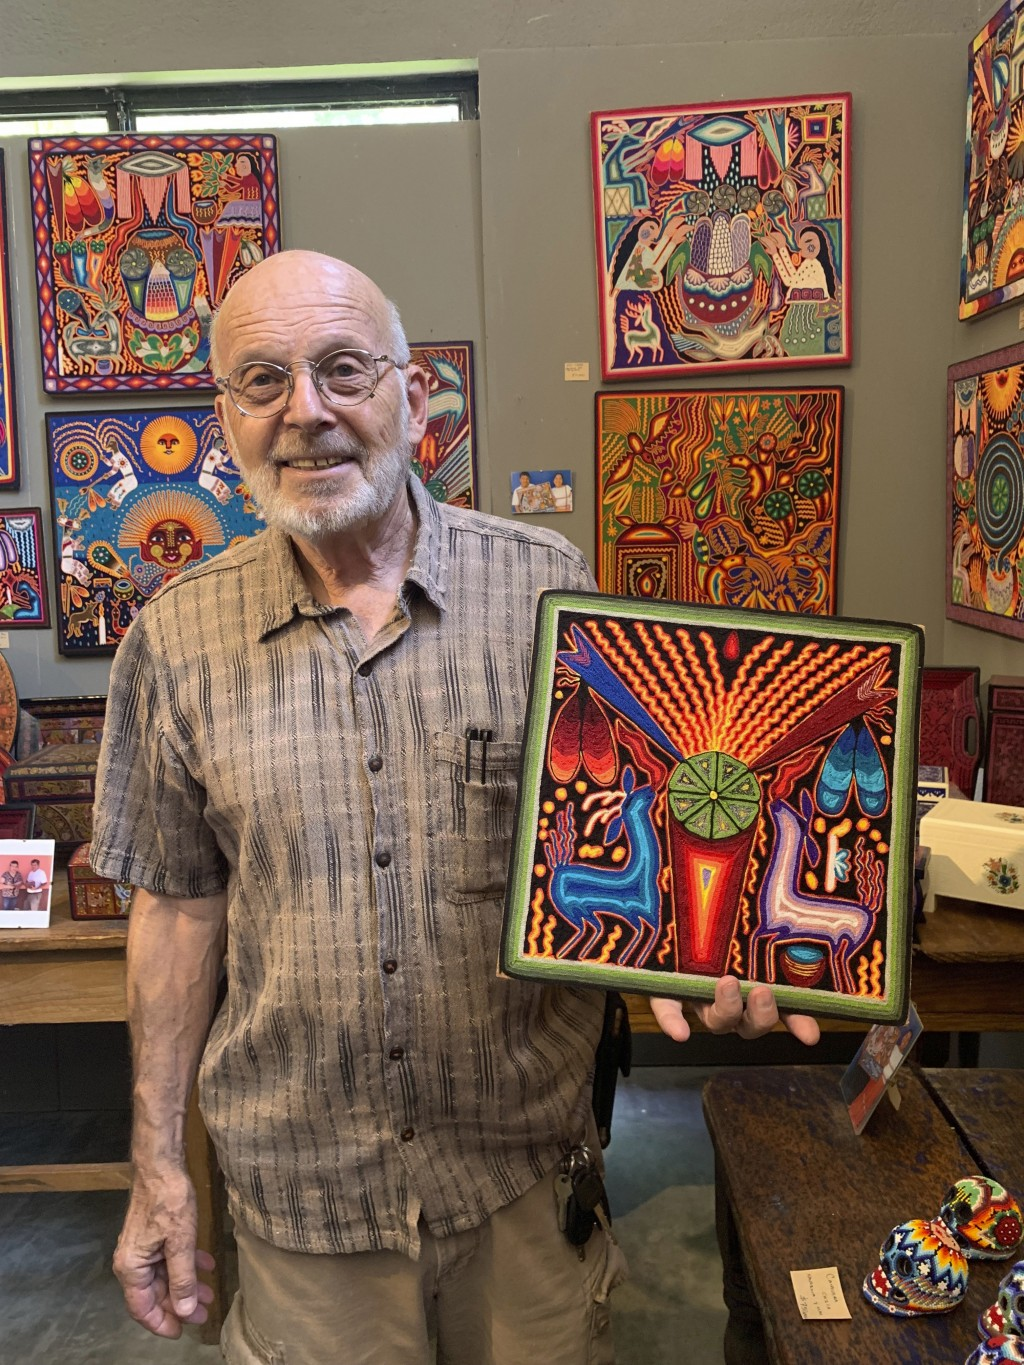 This June 17, 2019 photo shows gallery owner Mayer Shacter holding a Huichol yarn painting, at Galeria Atotonilco near San Miguel de Allende, Mexico.